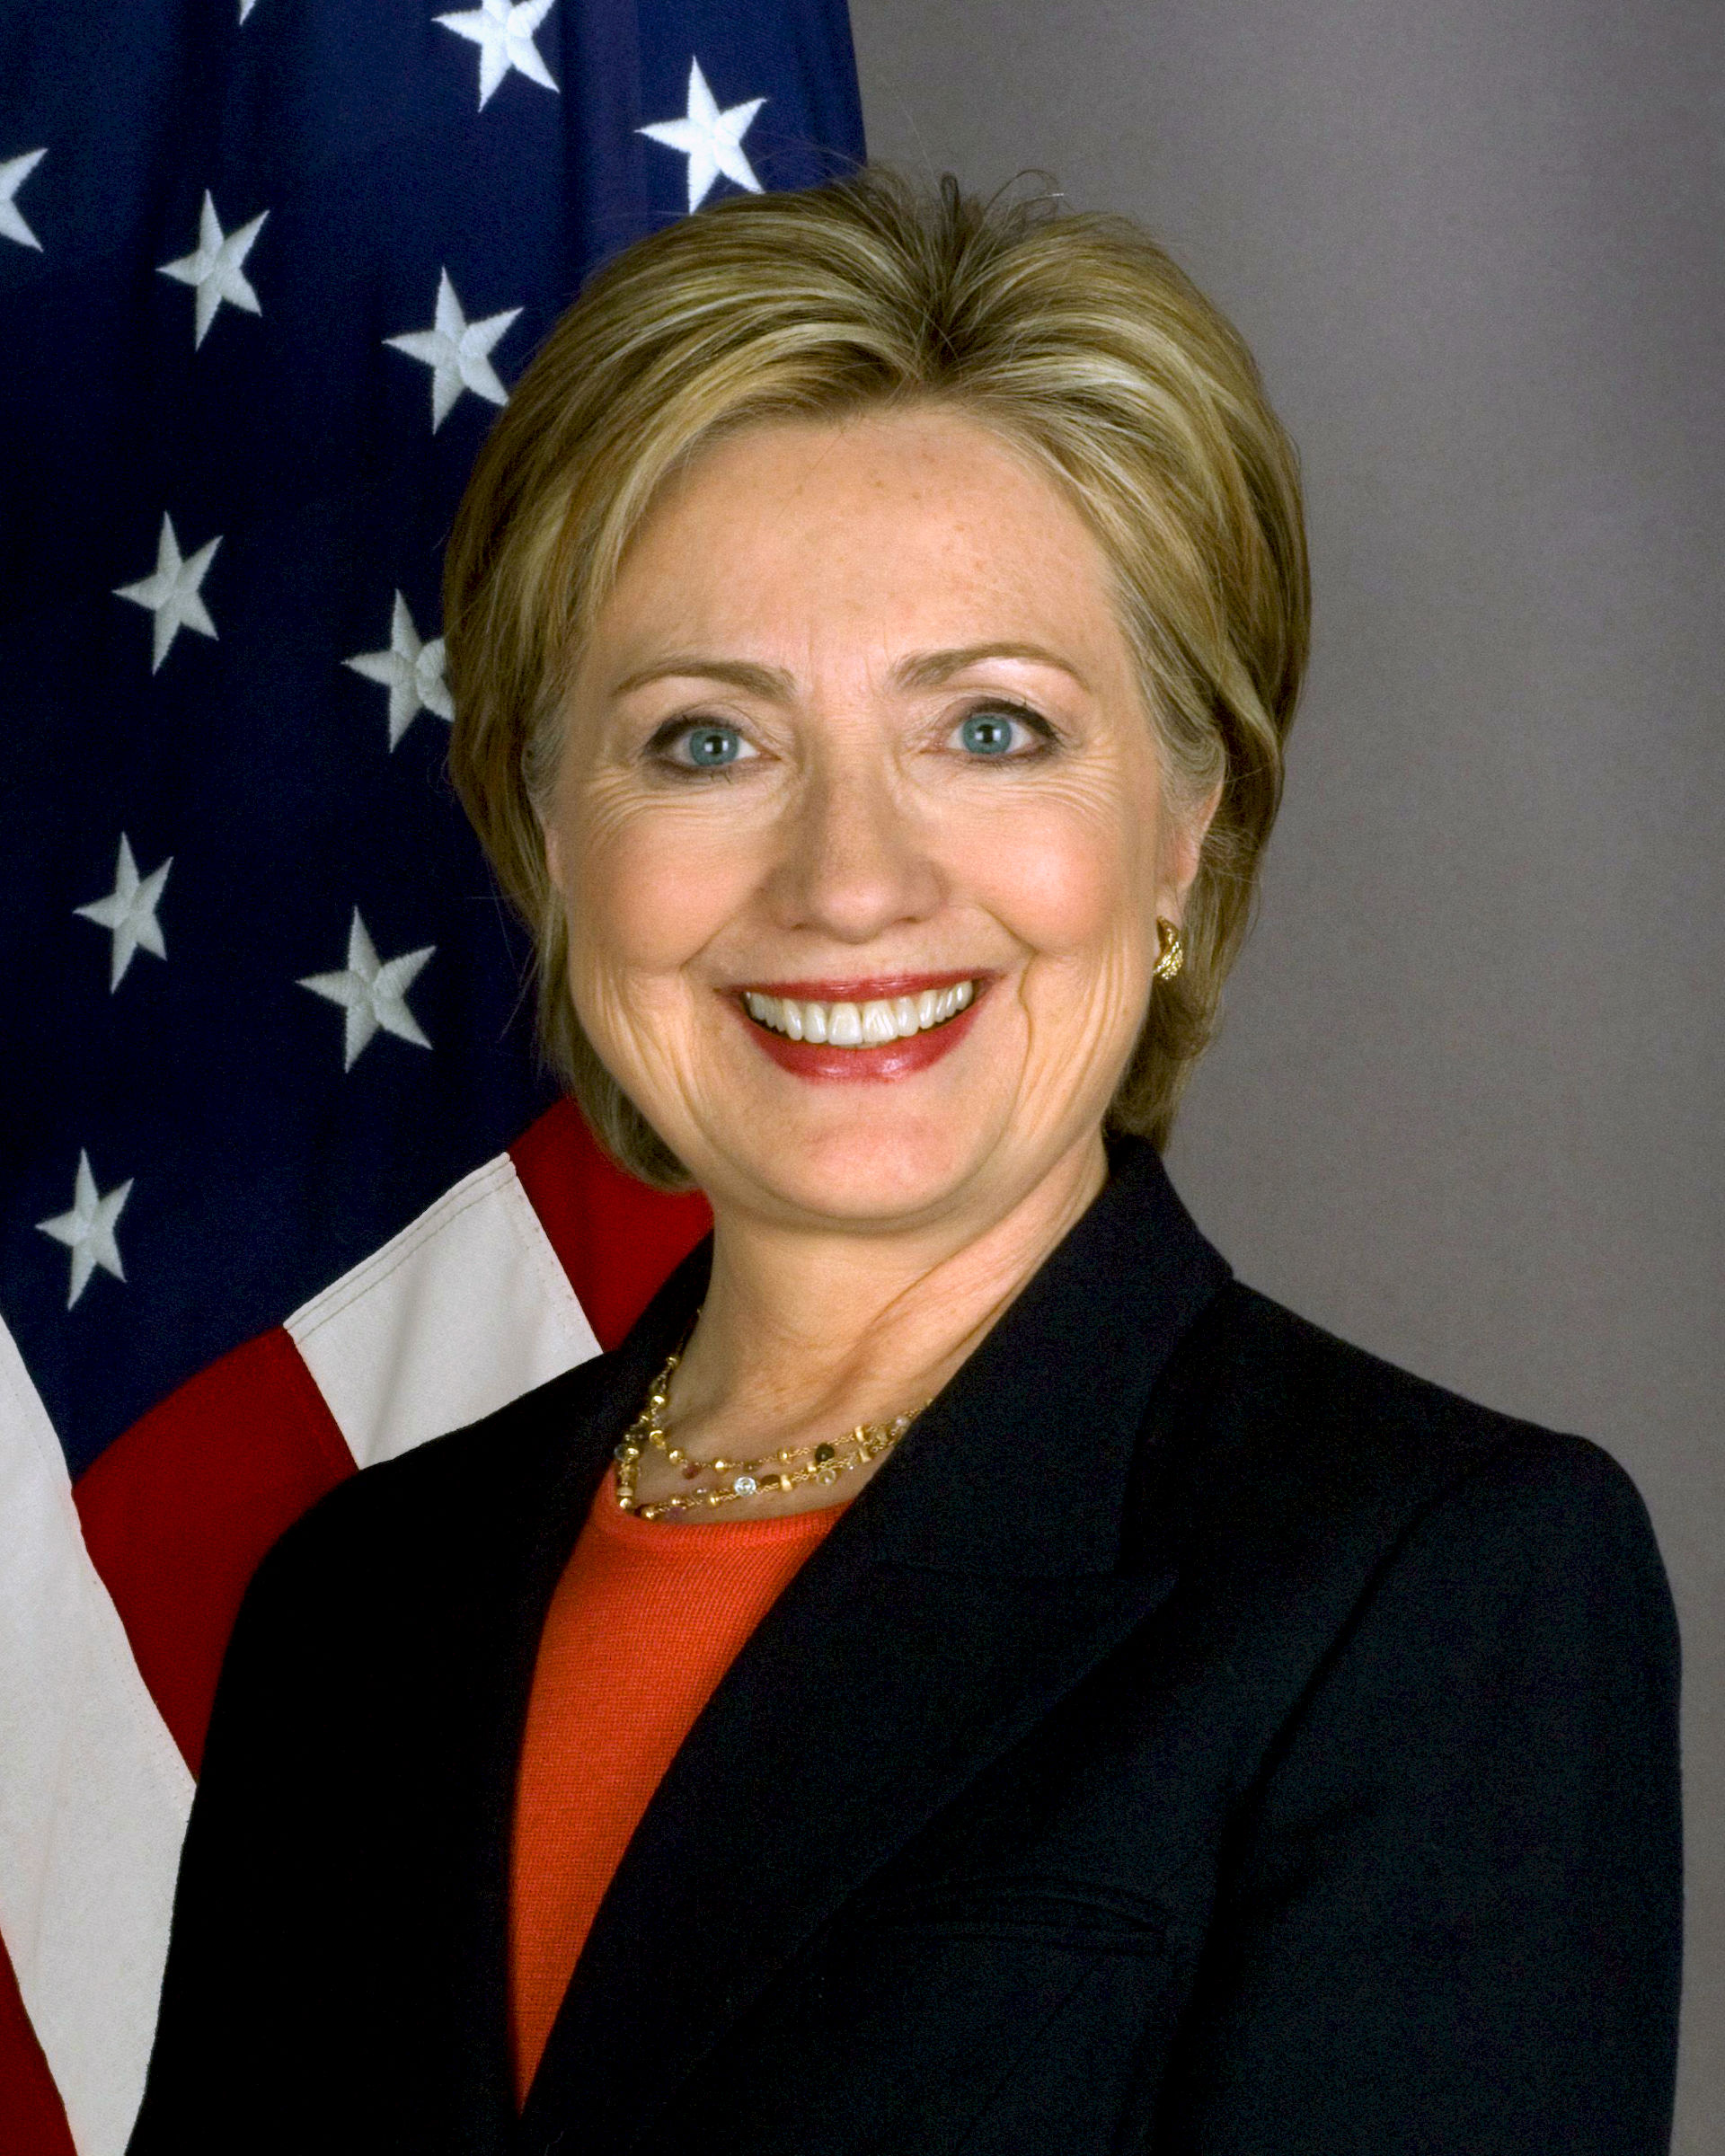 Photo of Hillary Clinton: American politician, former First Lady of the United States, U.S. Senator, and Secretary of State